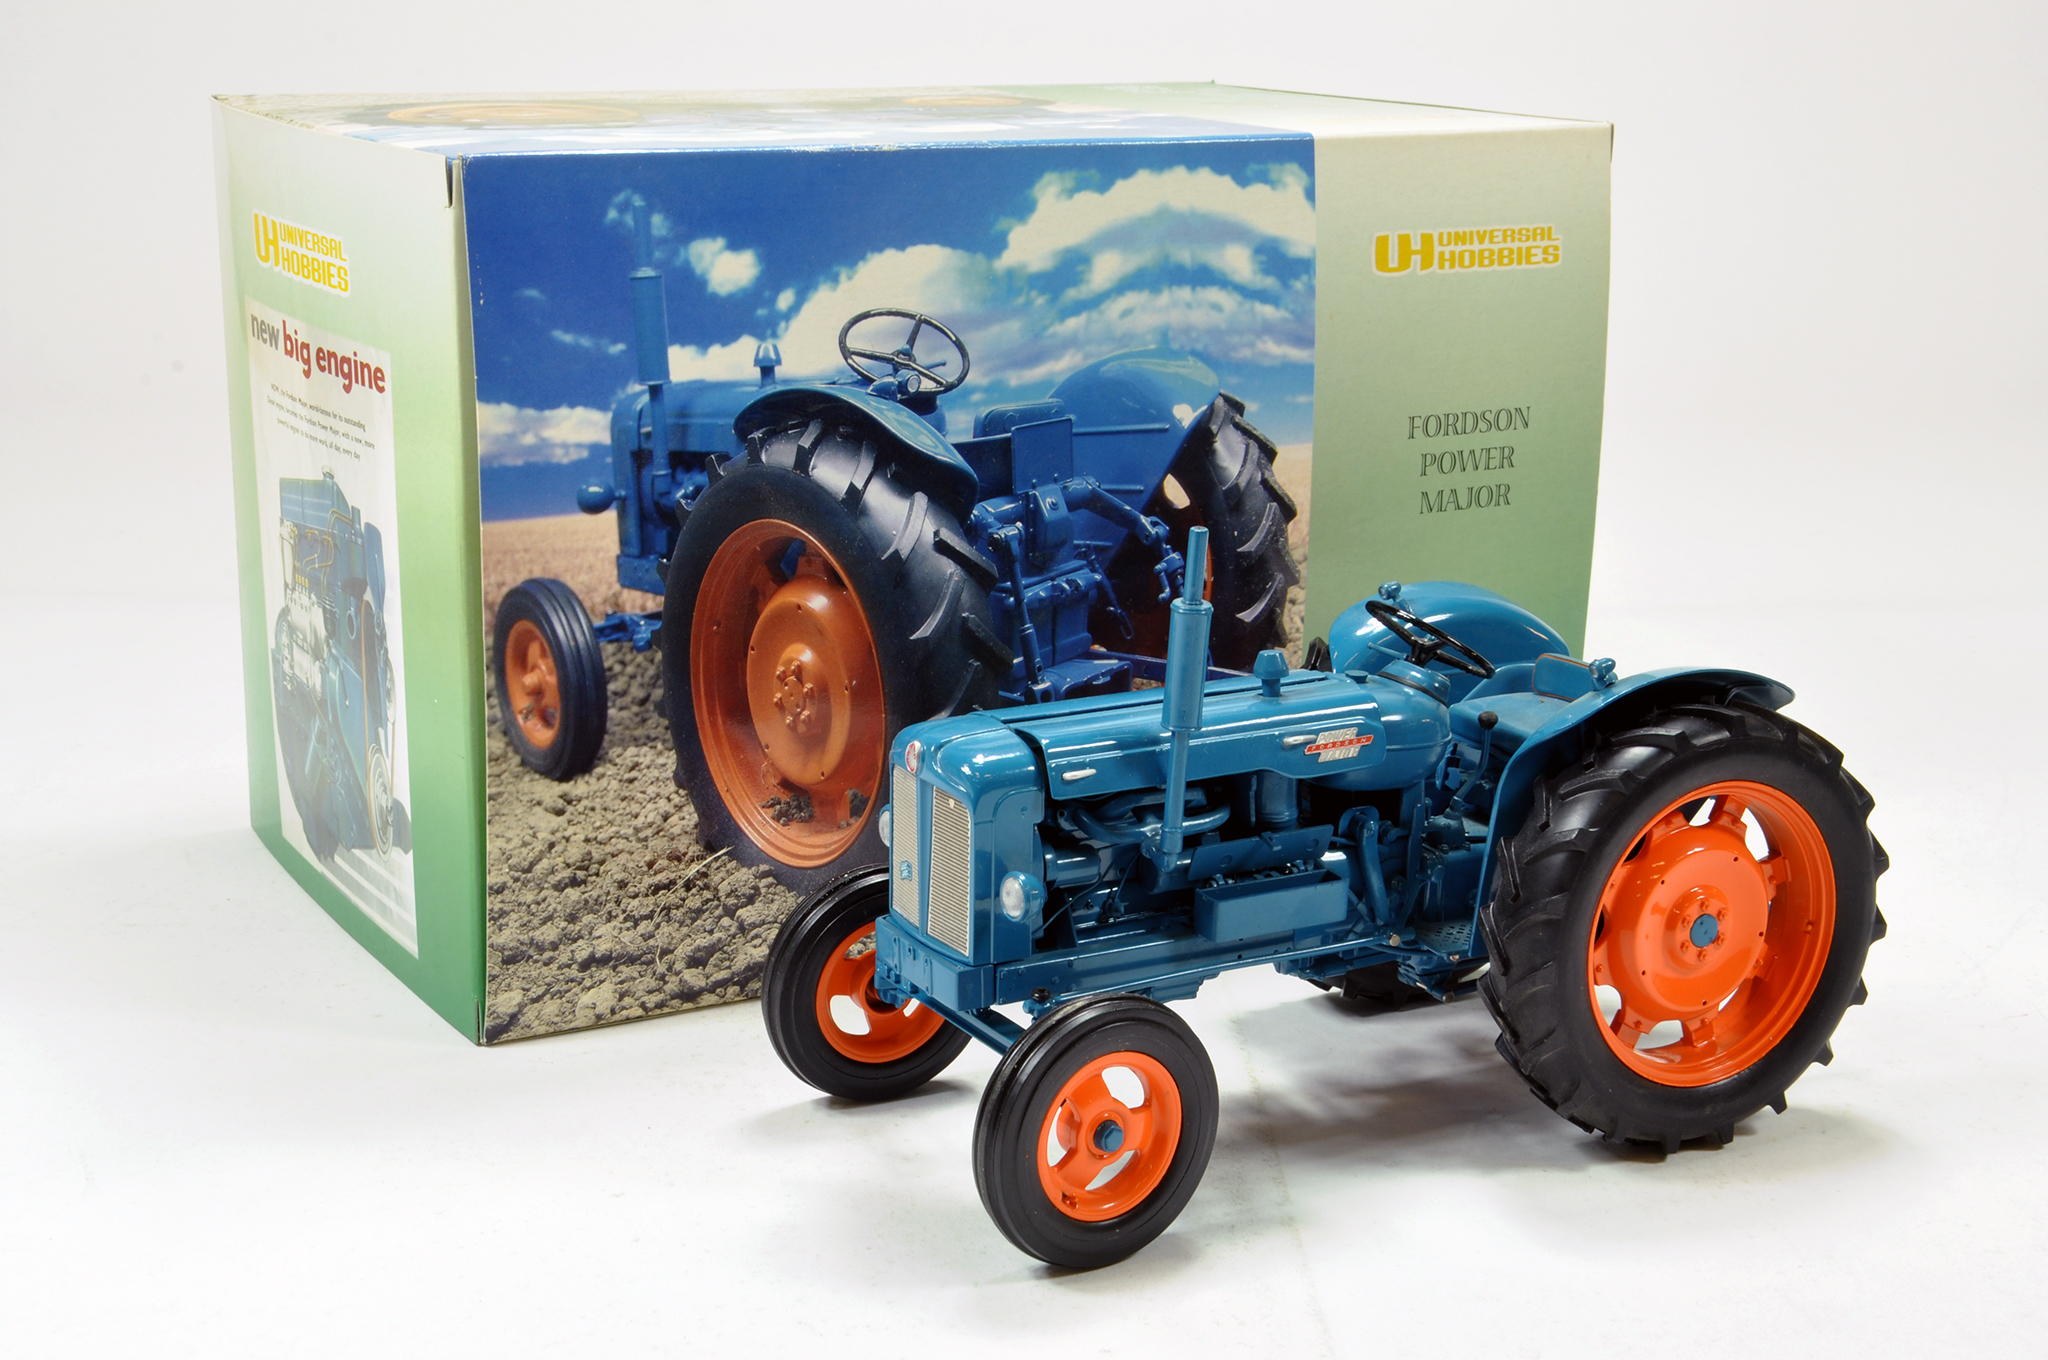 Lot 143 - Universal hobbies 1/16 Fordson power major tractor. Generally excellent in box.